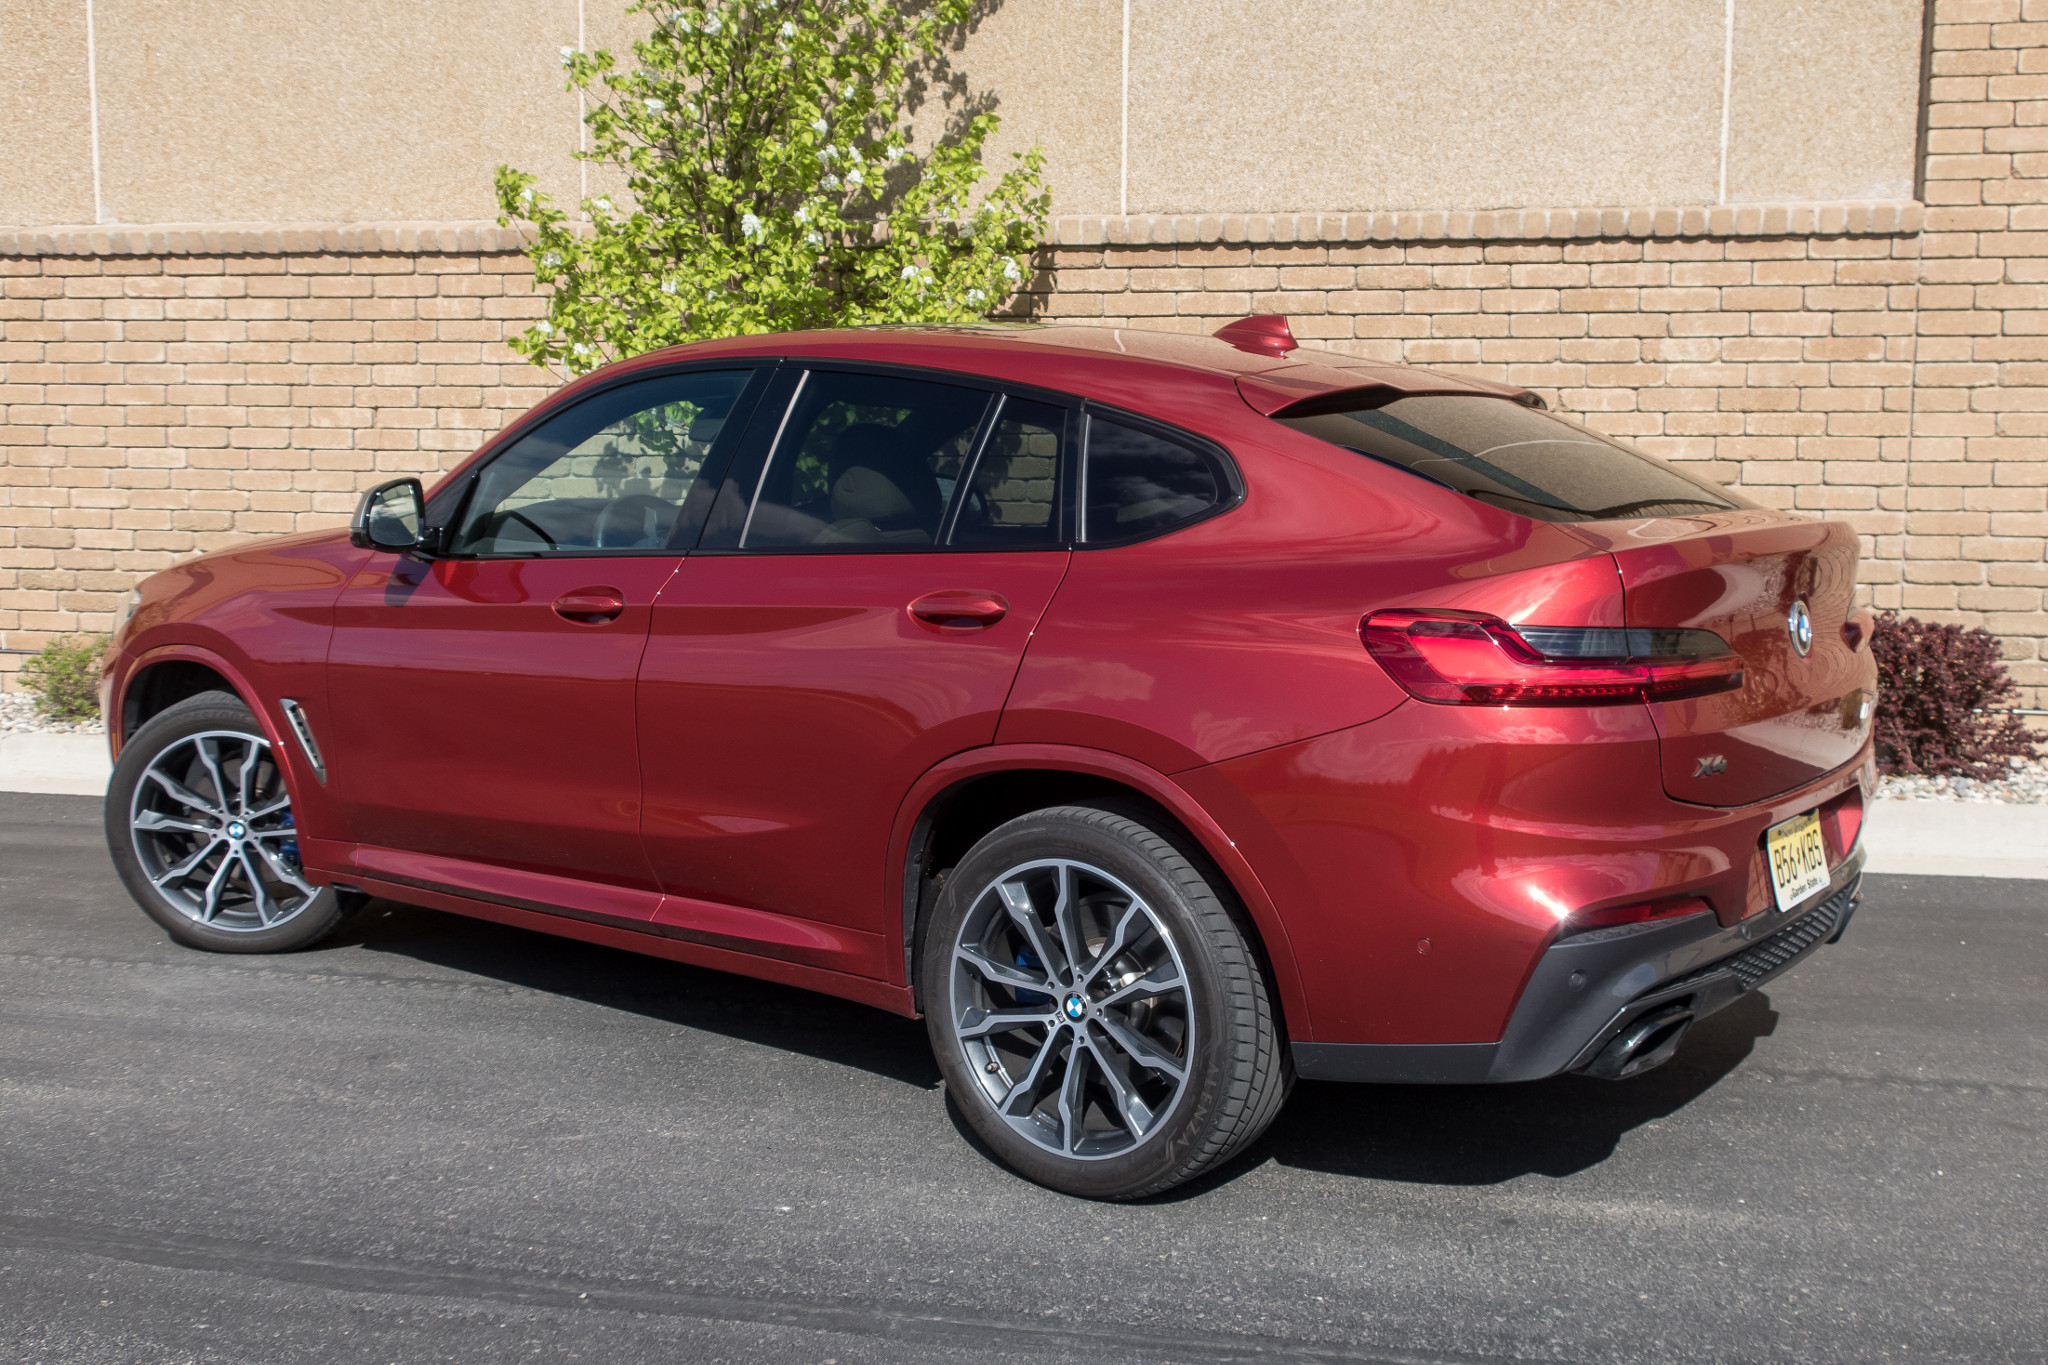 2021 Bmw X4 Changes Price M Performance Release Date Interior 2021 2022 Best Suv Models